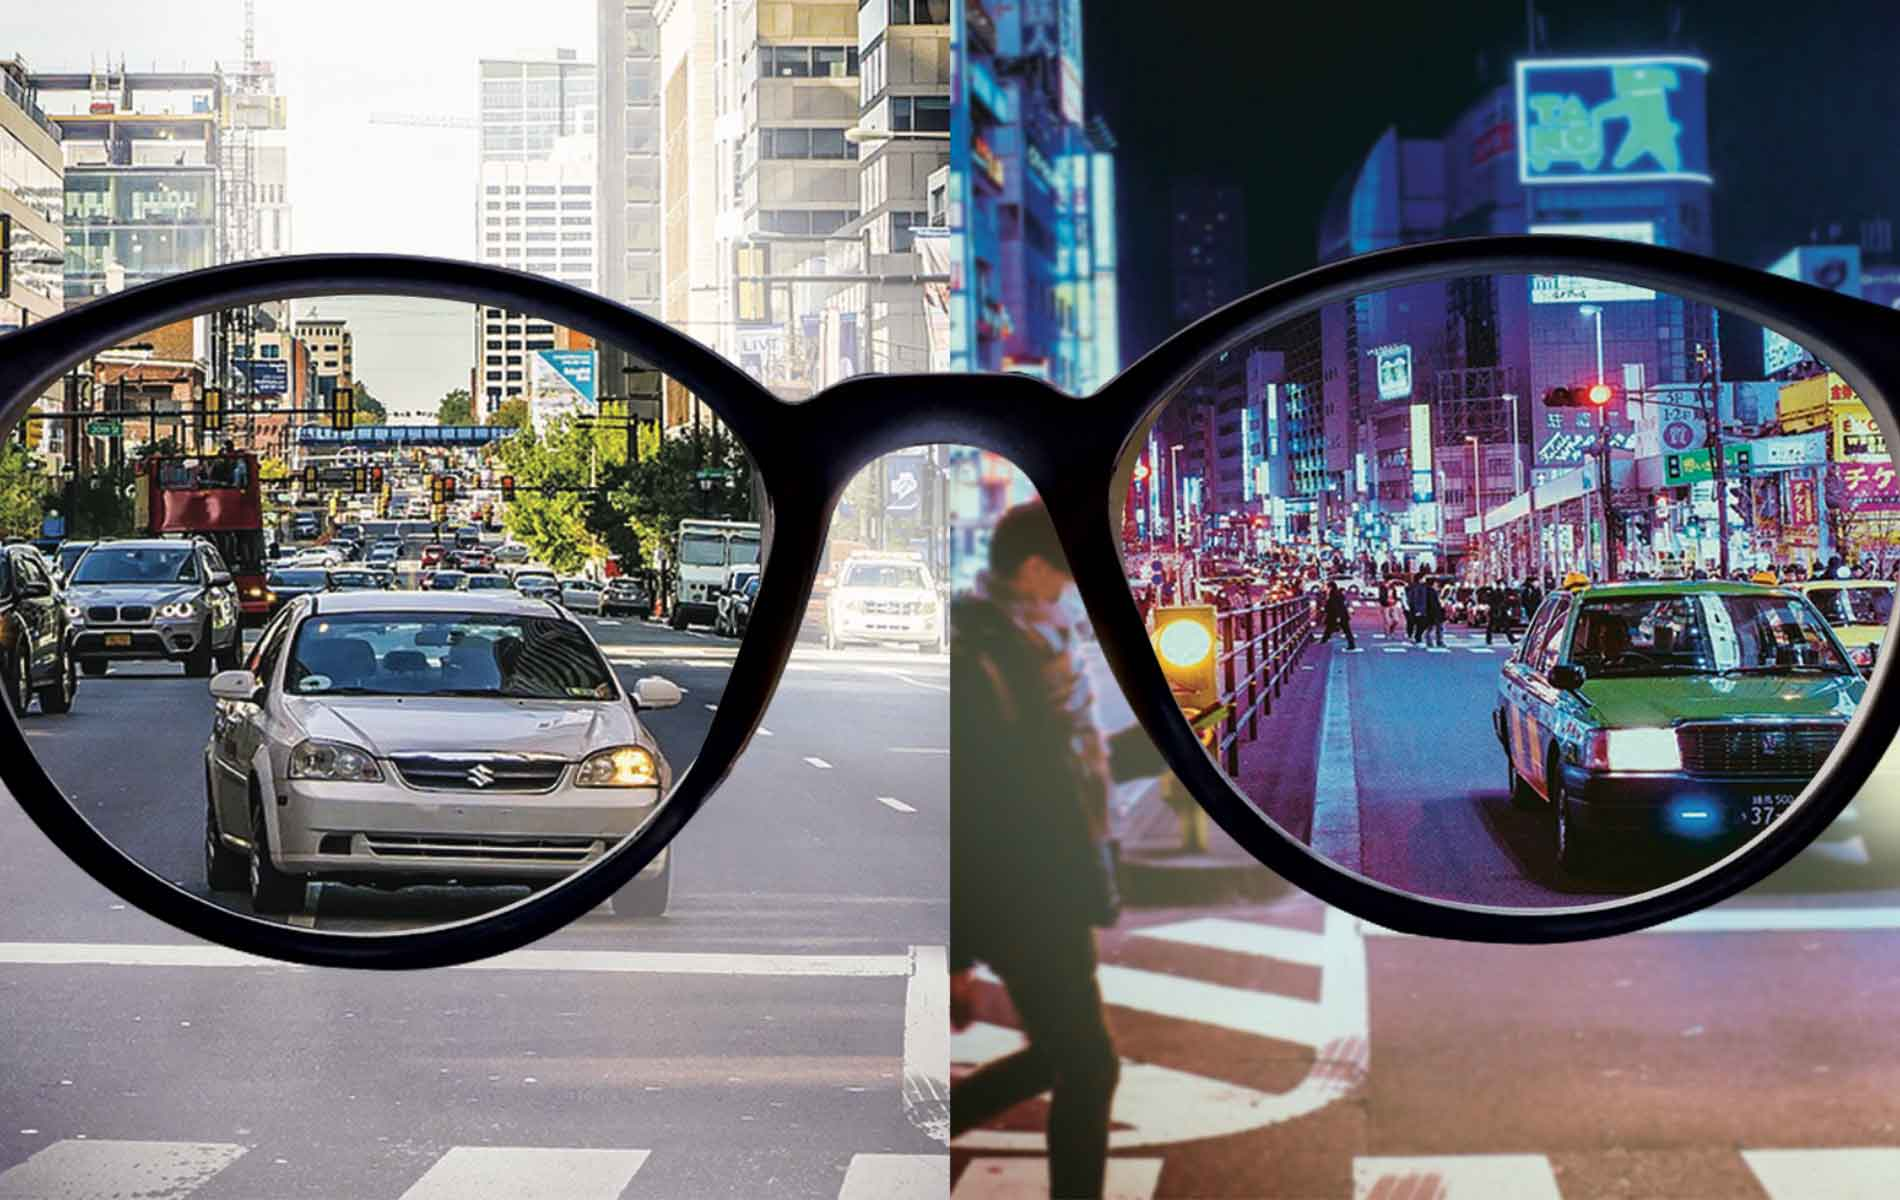 split image of a city during the day and night seen through the glasses